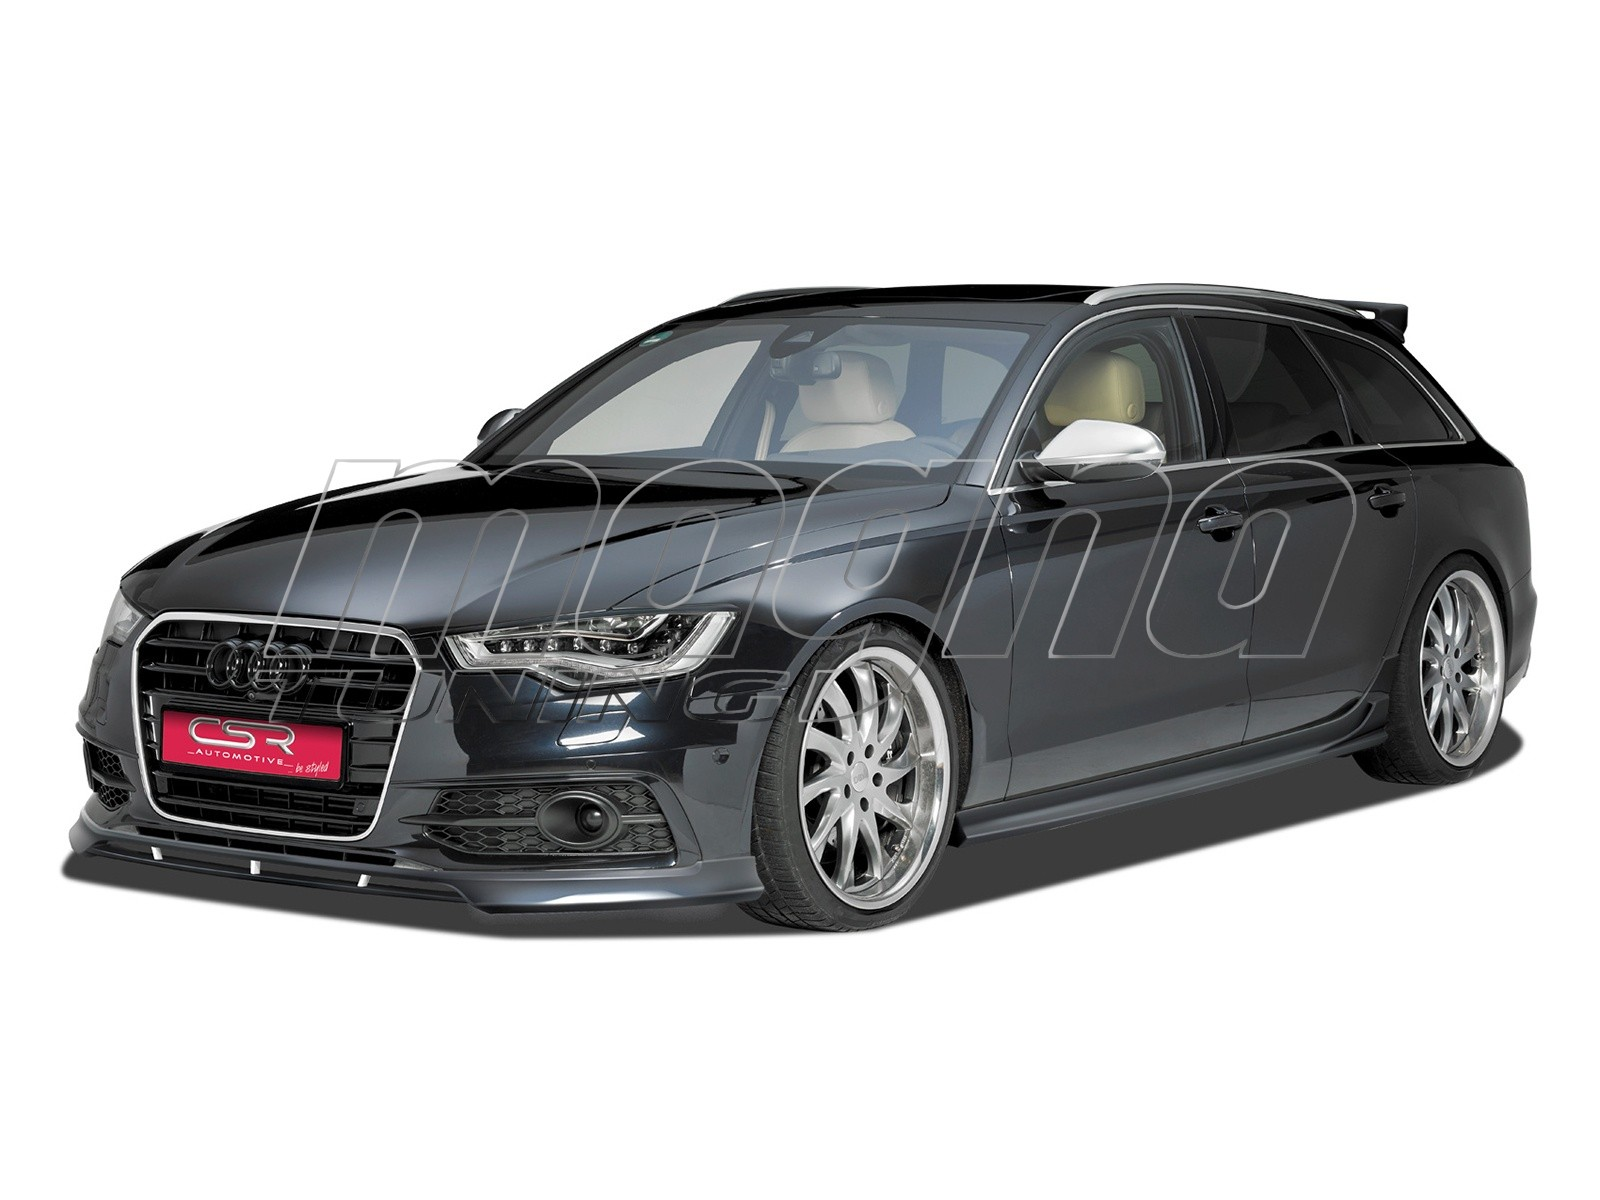 audi a6 c7 4g crono body kit. Black Bedroom Furniture Sets. Home Design Ideas